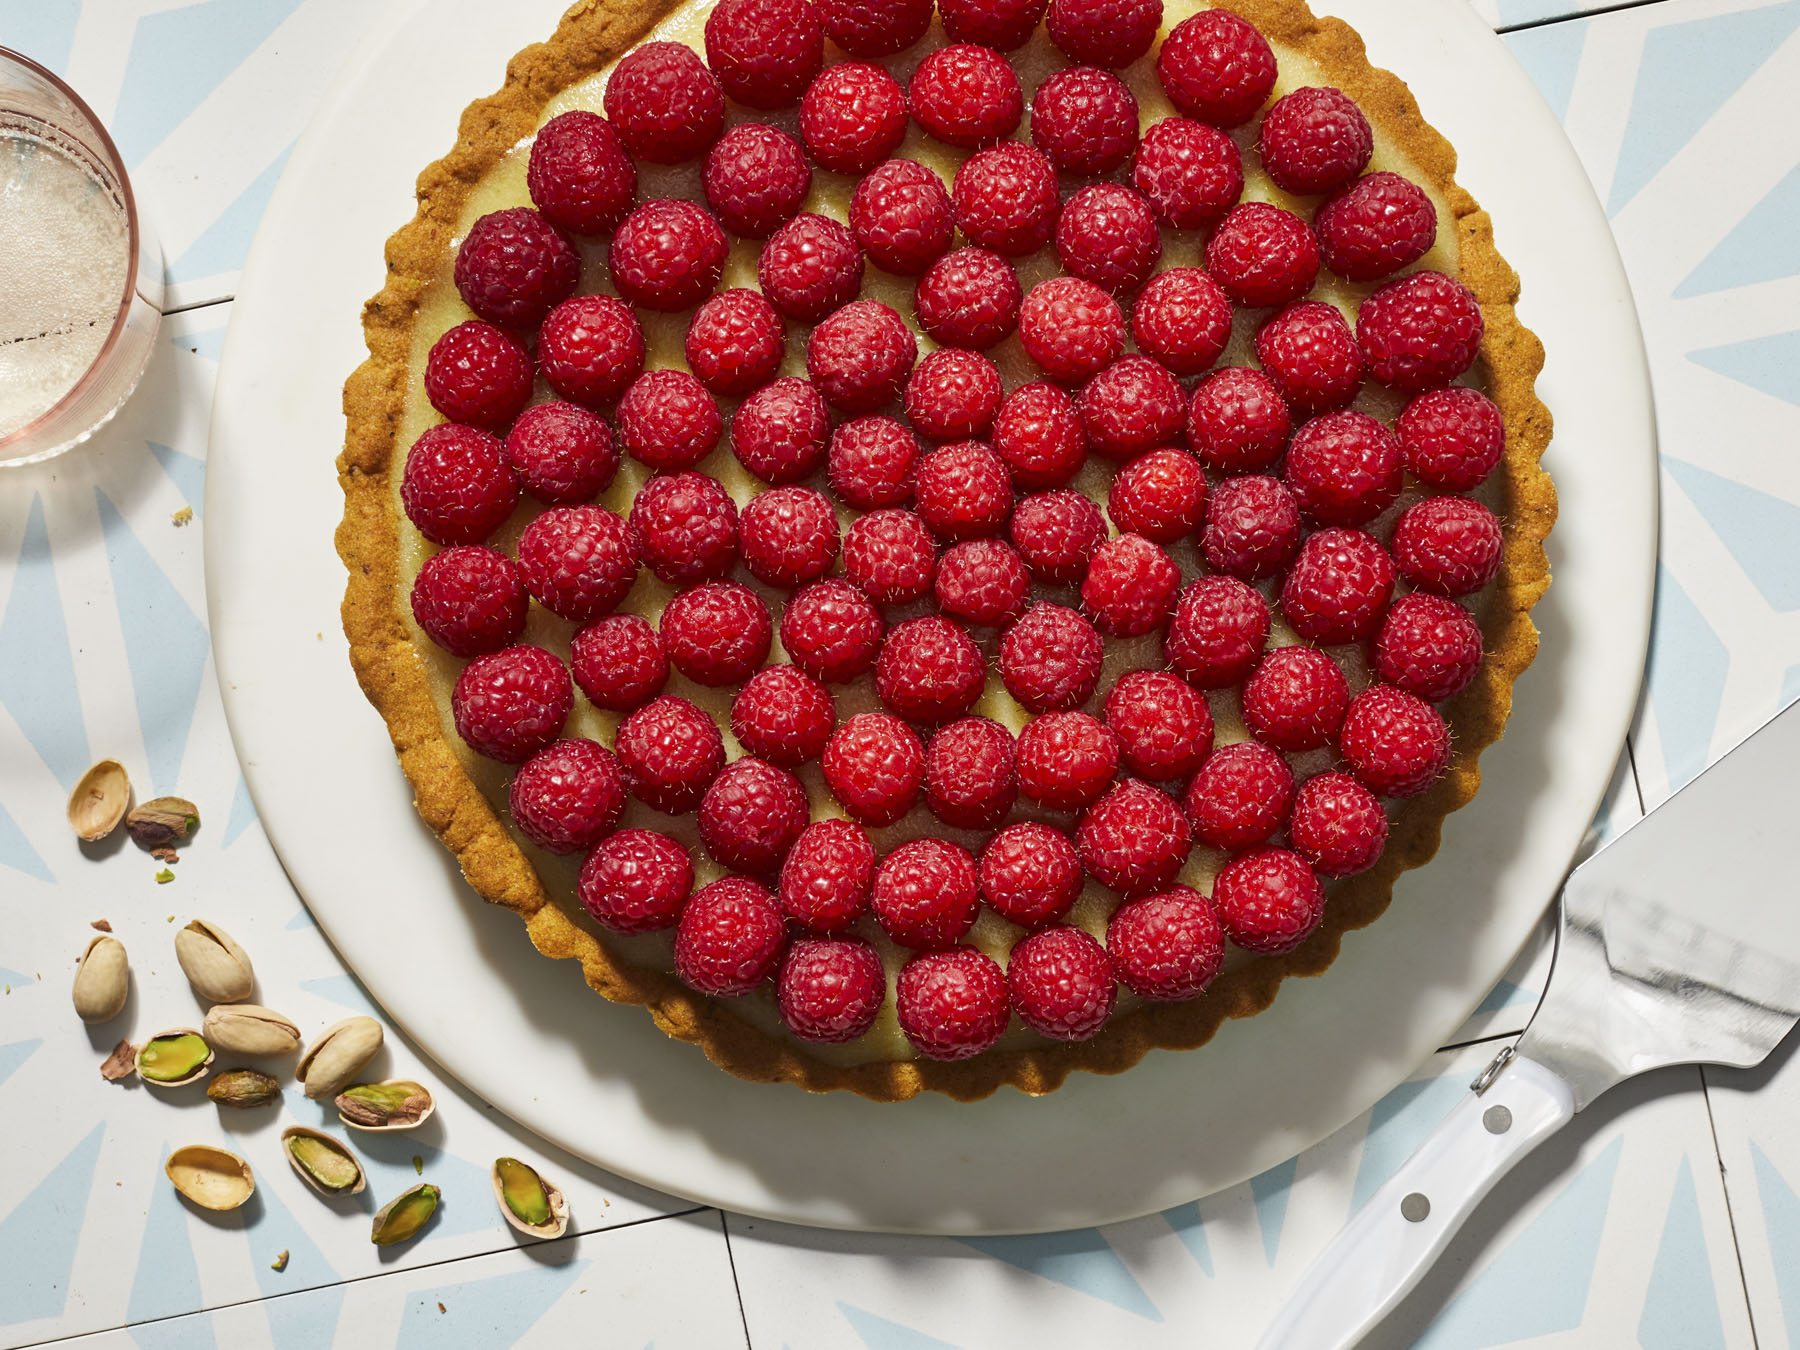 Raspberry-Lime Tart with Pistachio Crust